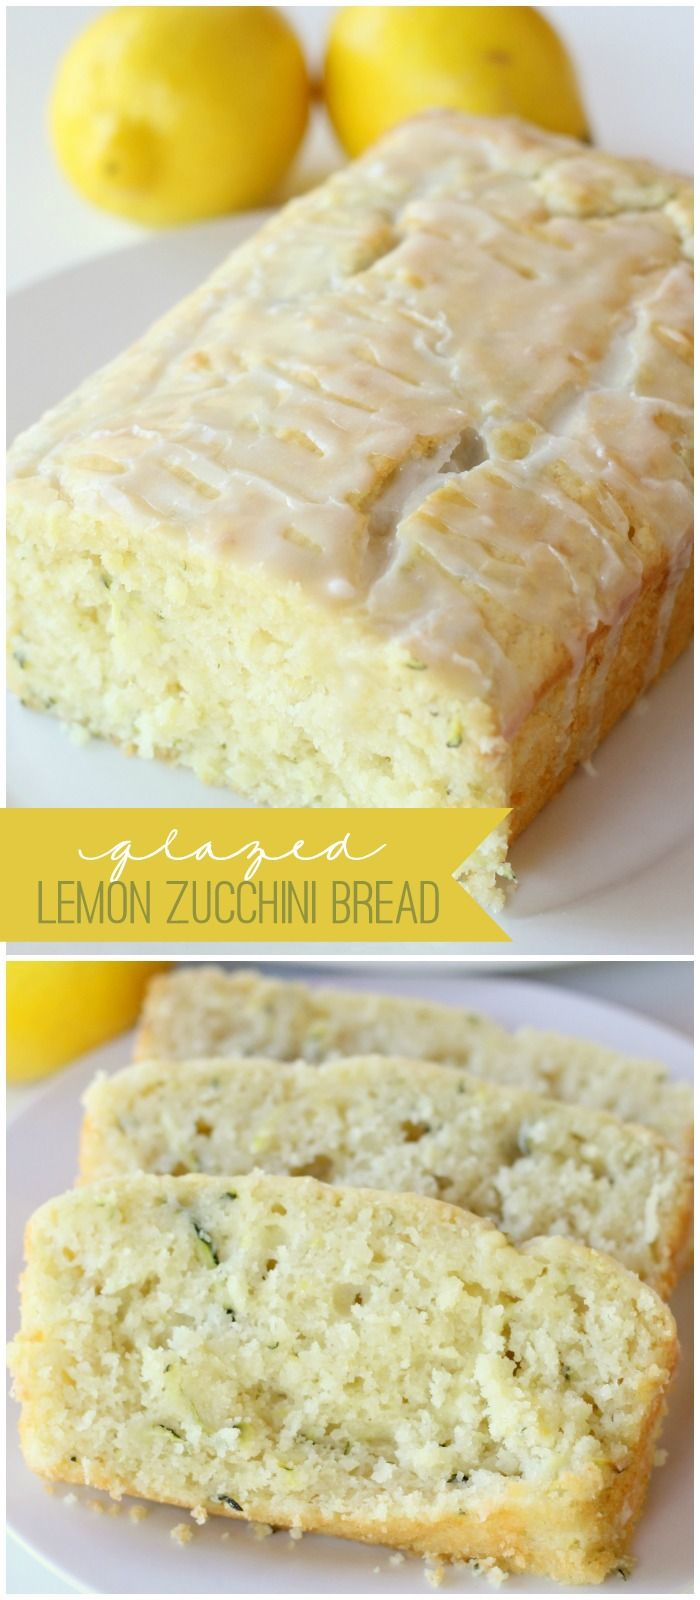 Delicious Glazed Lemon Zucchini Bread